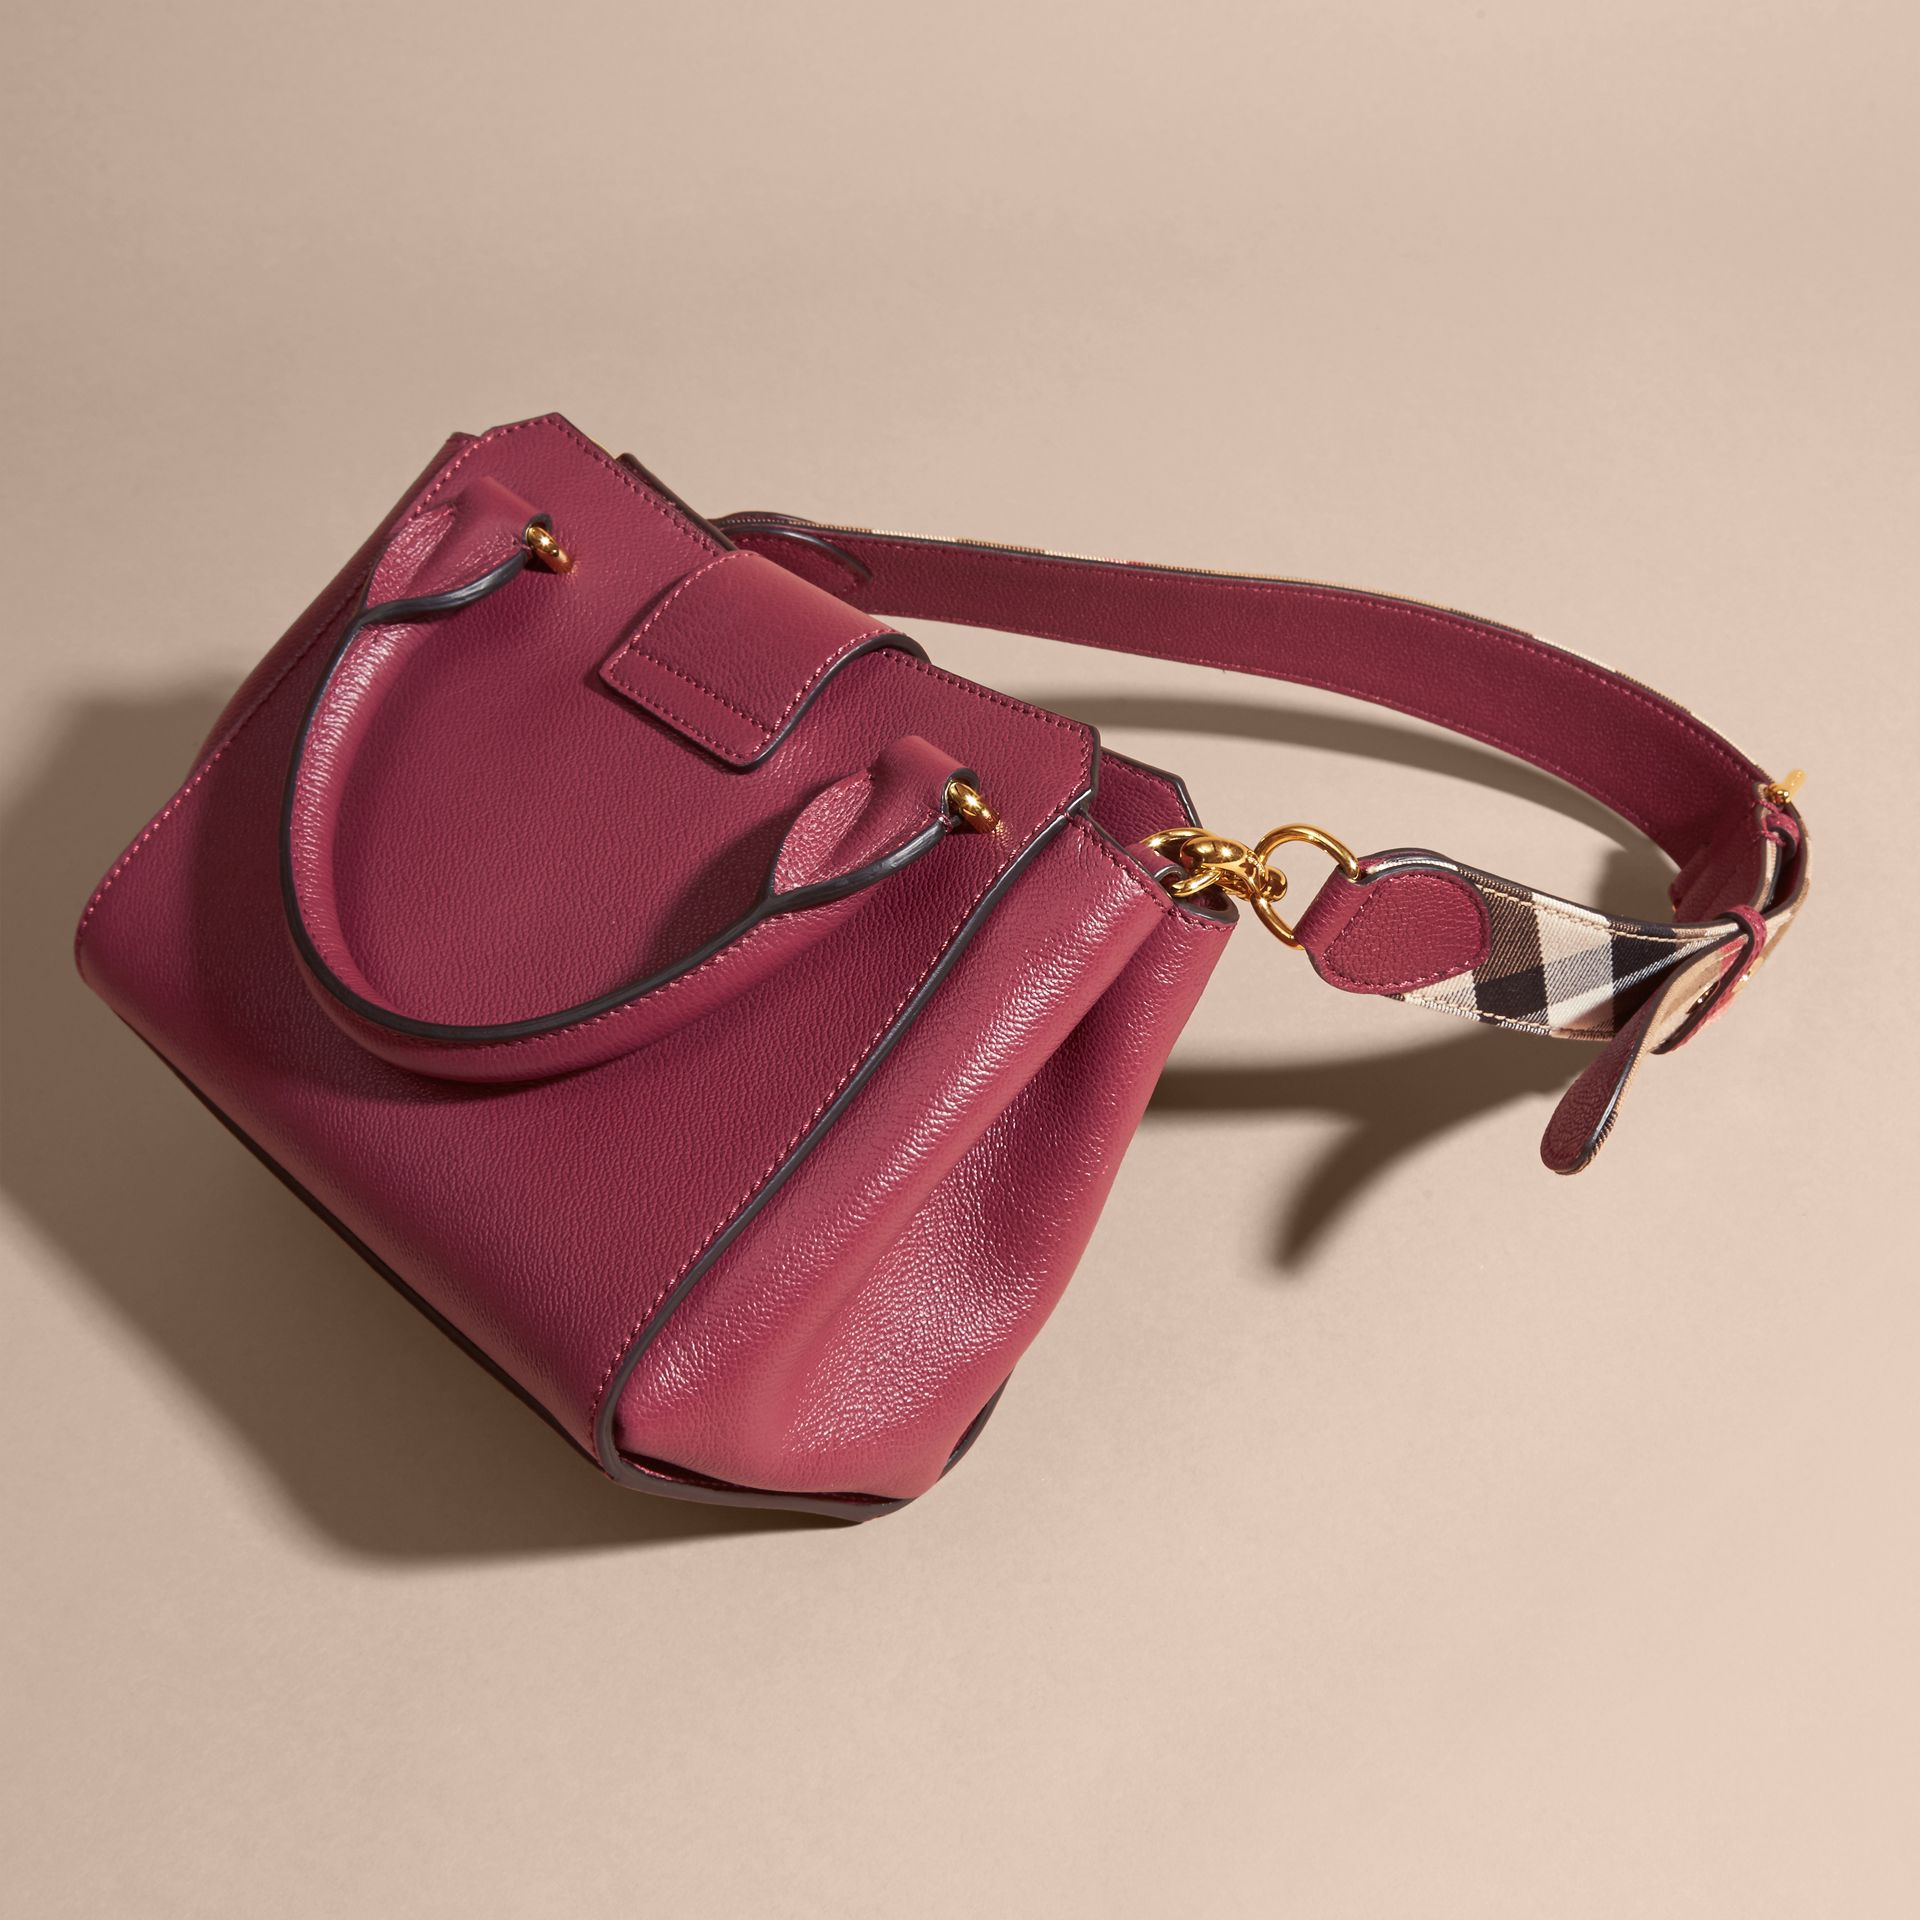 Dark plum The Small Buckle Tote in Grainy Leather Dark Plum - gallery image 5